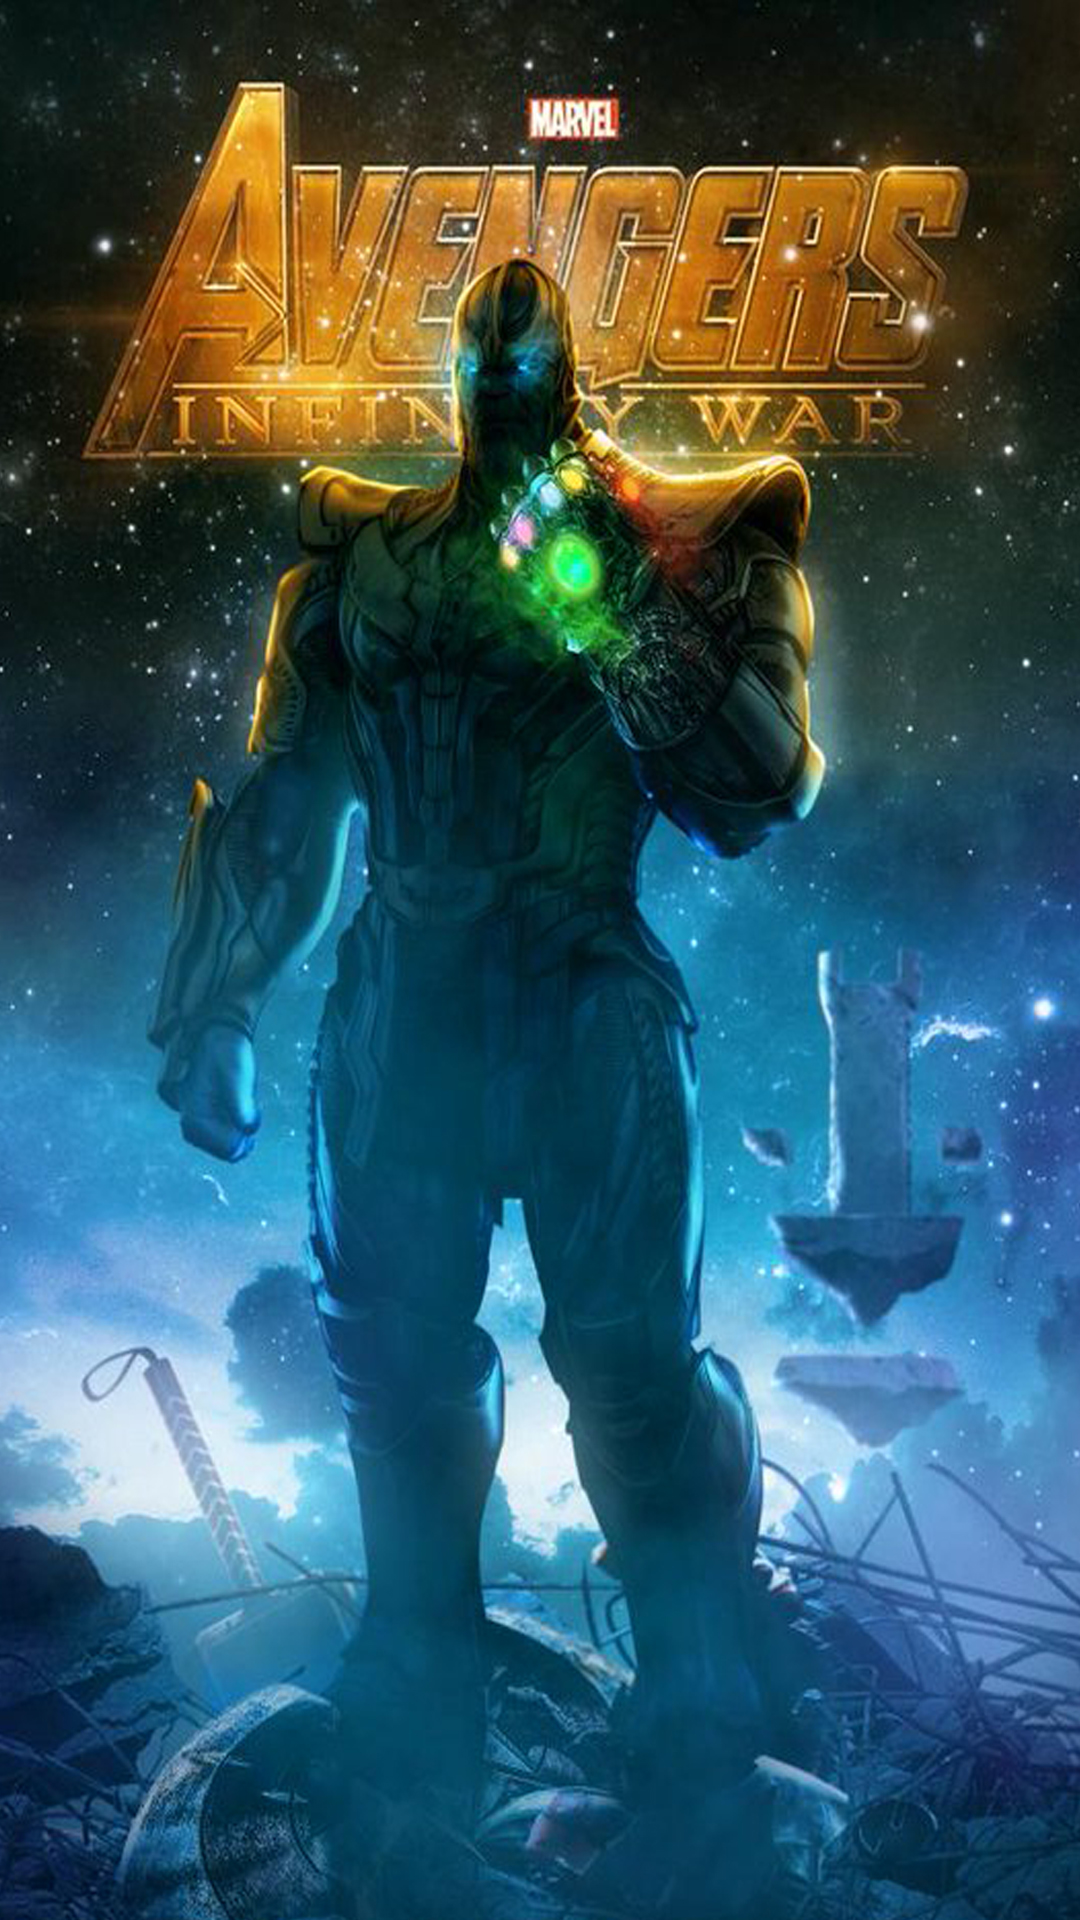 Avengers Infinity War Wallpaper For Iphone X 8 7 6 Free